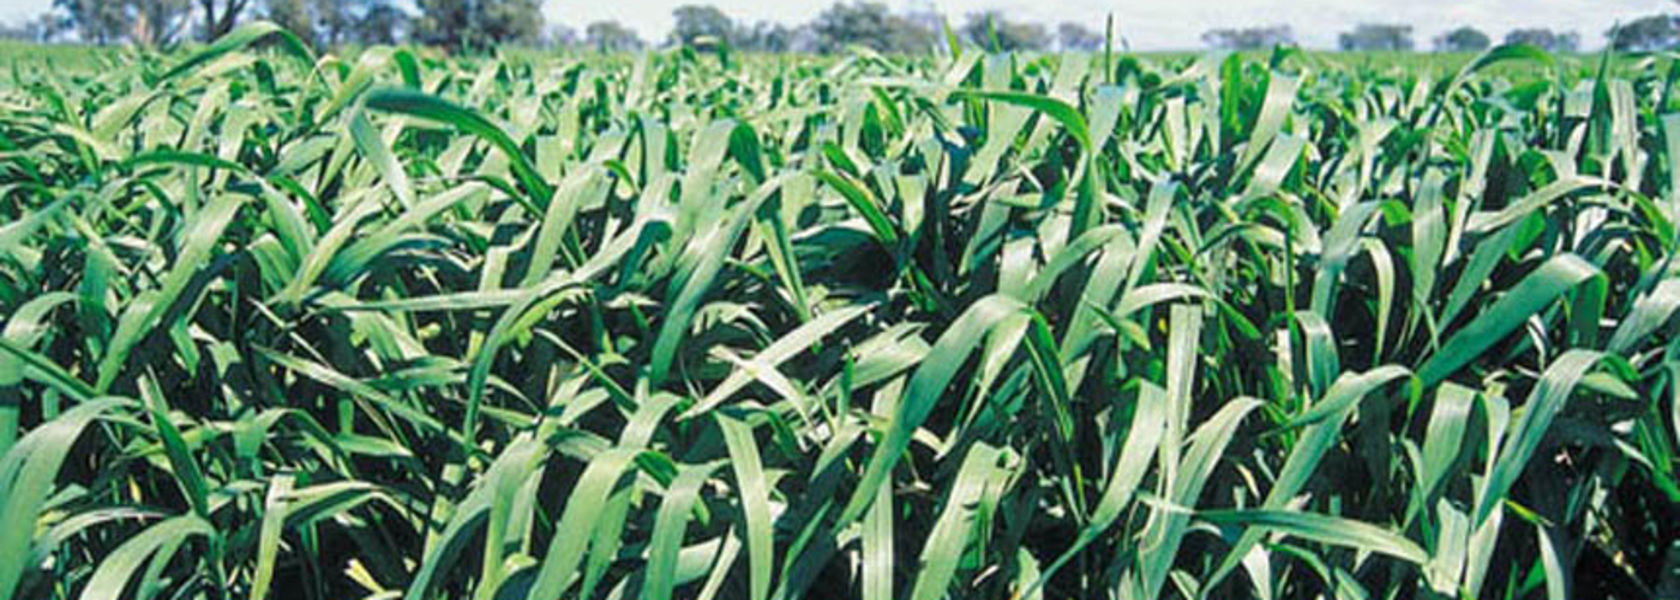 Coal-derived fertiliser boosts crops